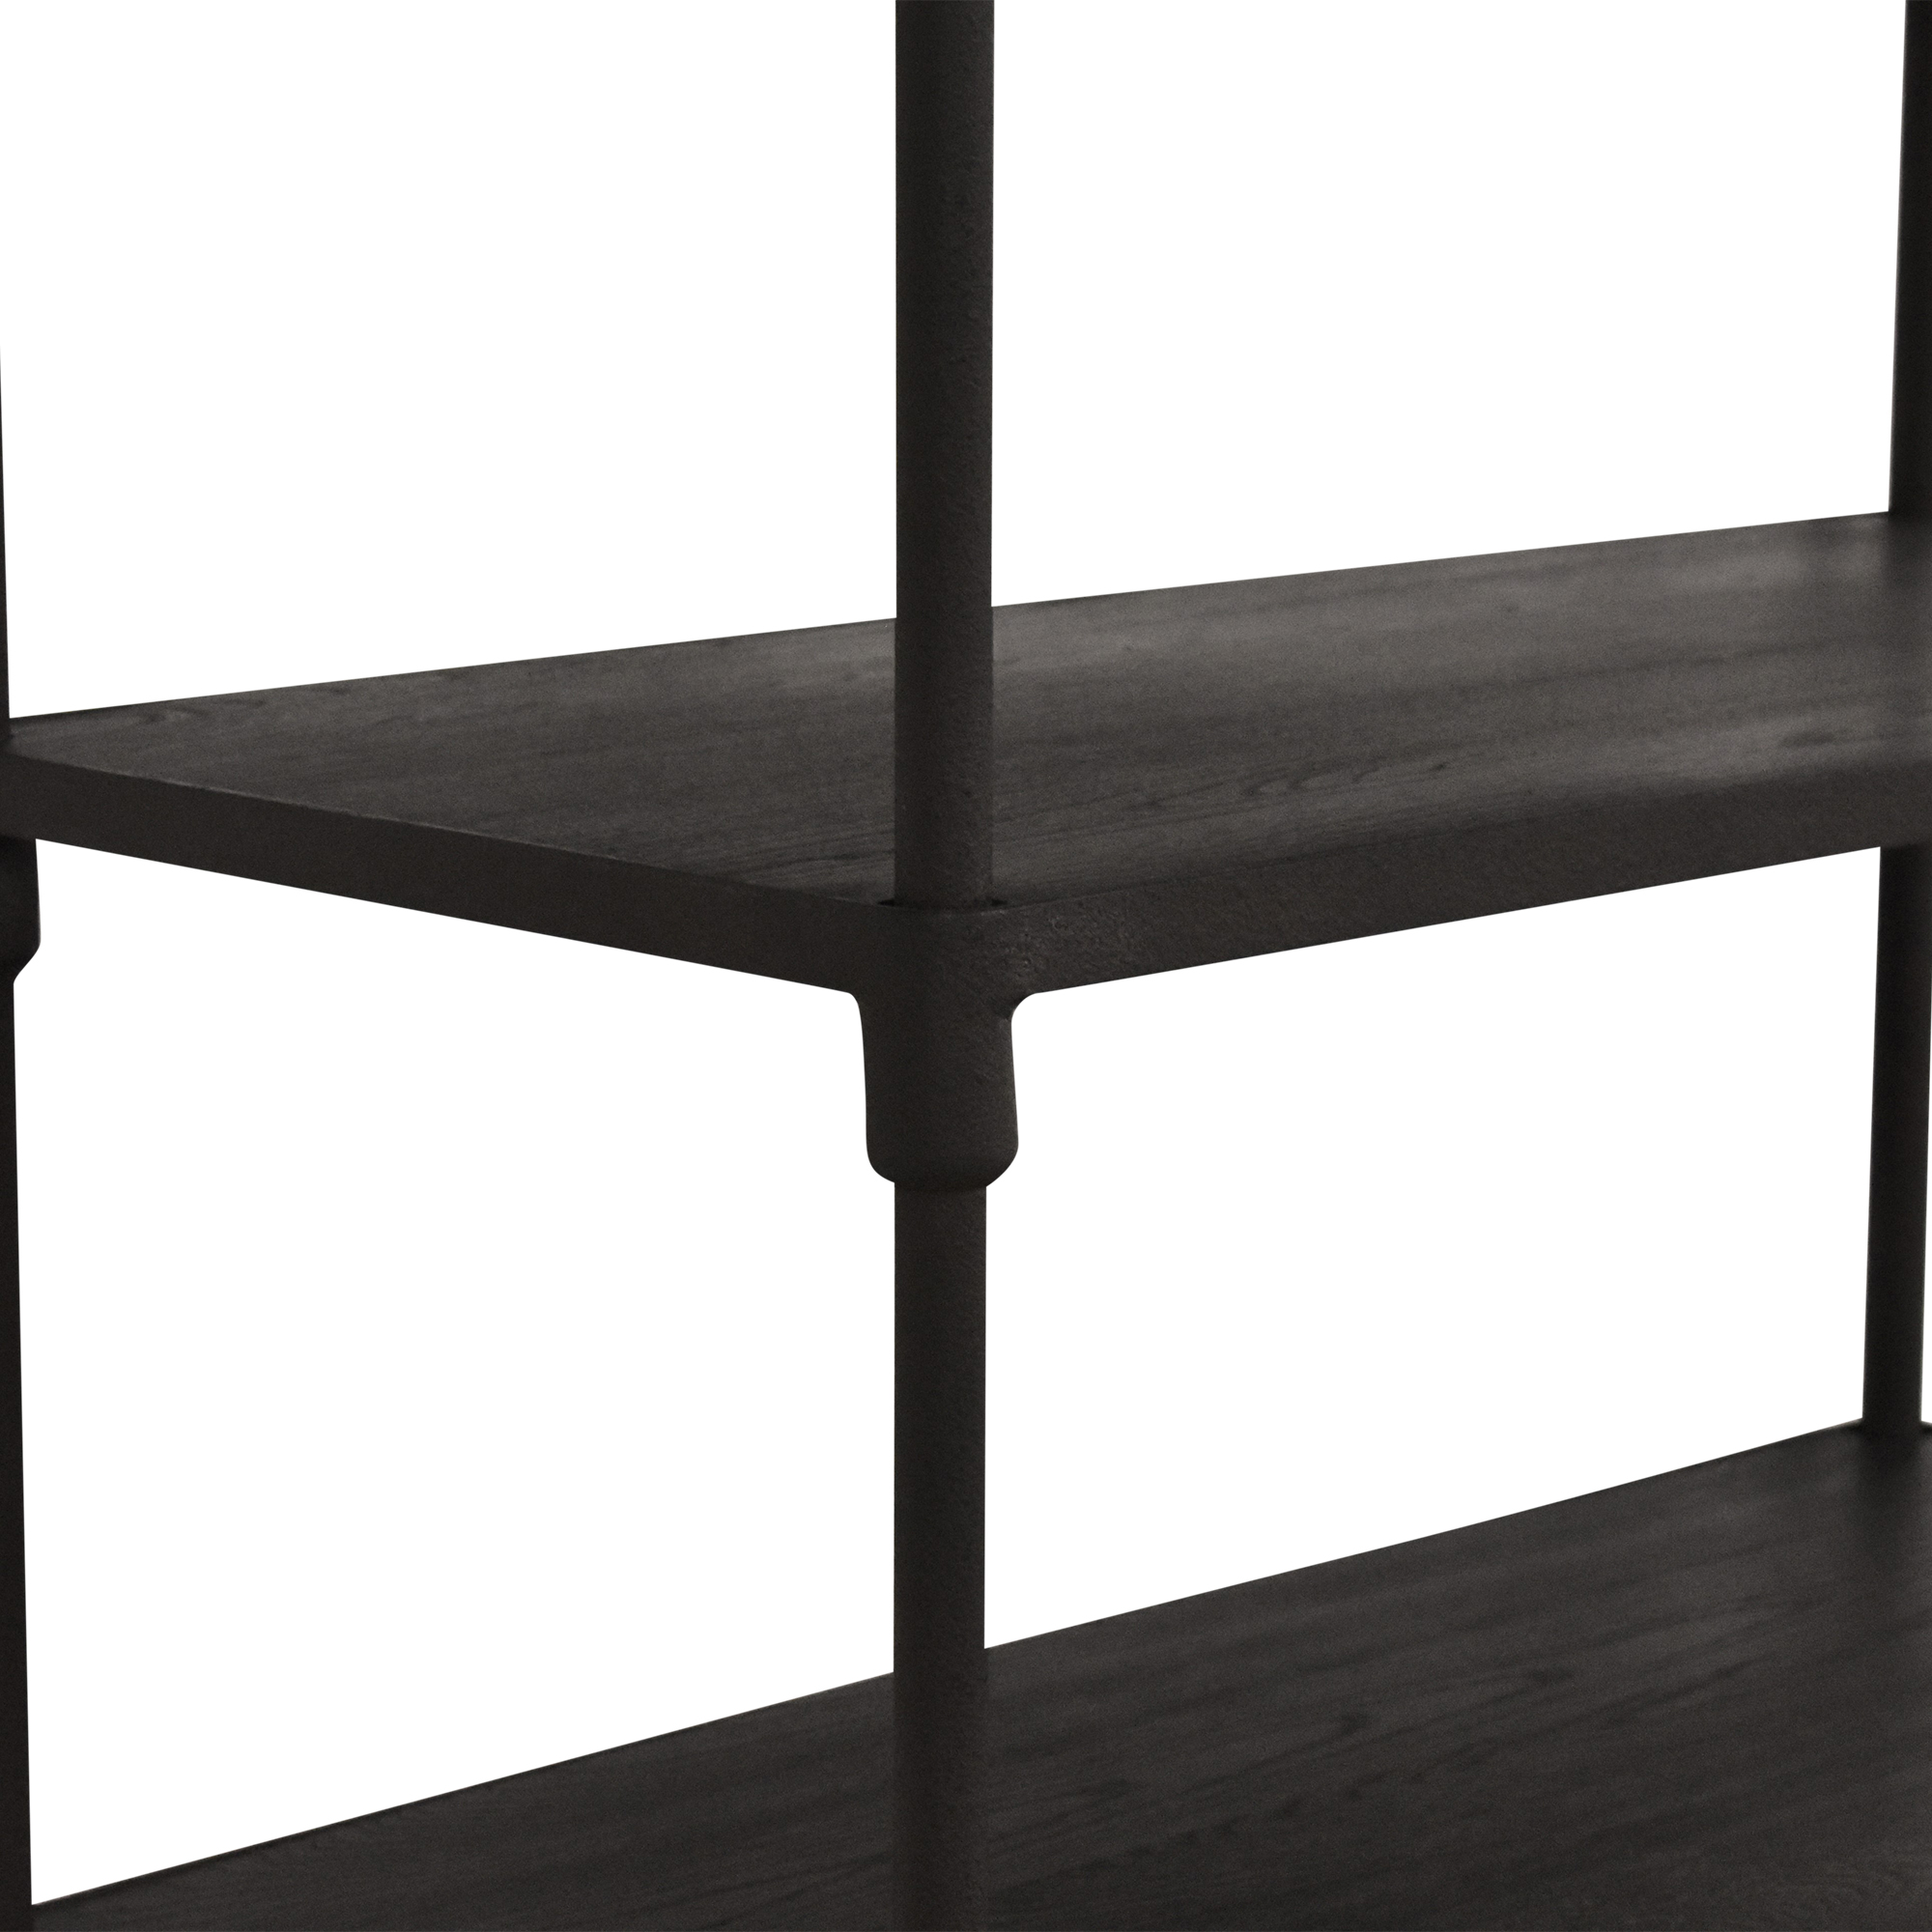 Restoration Hardware Restoration Hardware Dutch Industrial Single Bookcase ct